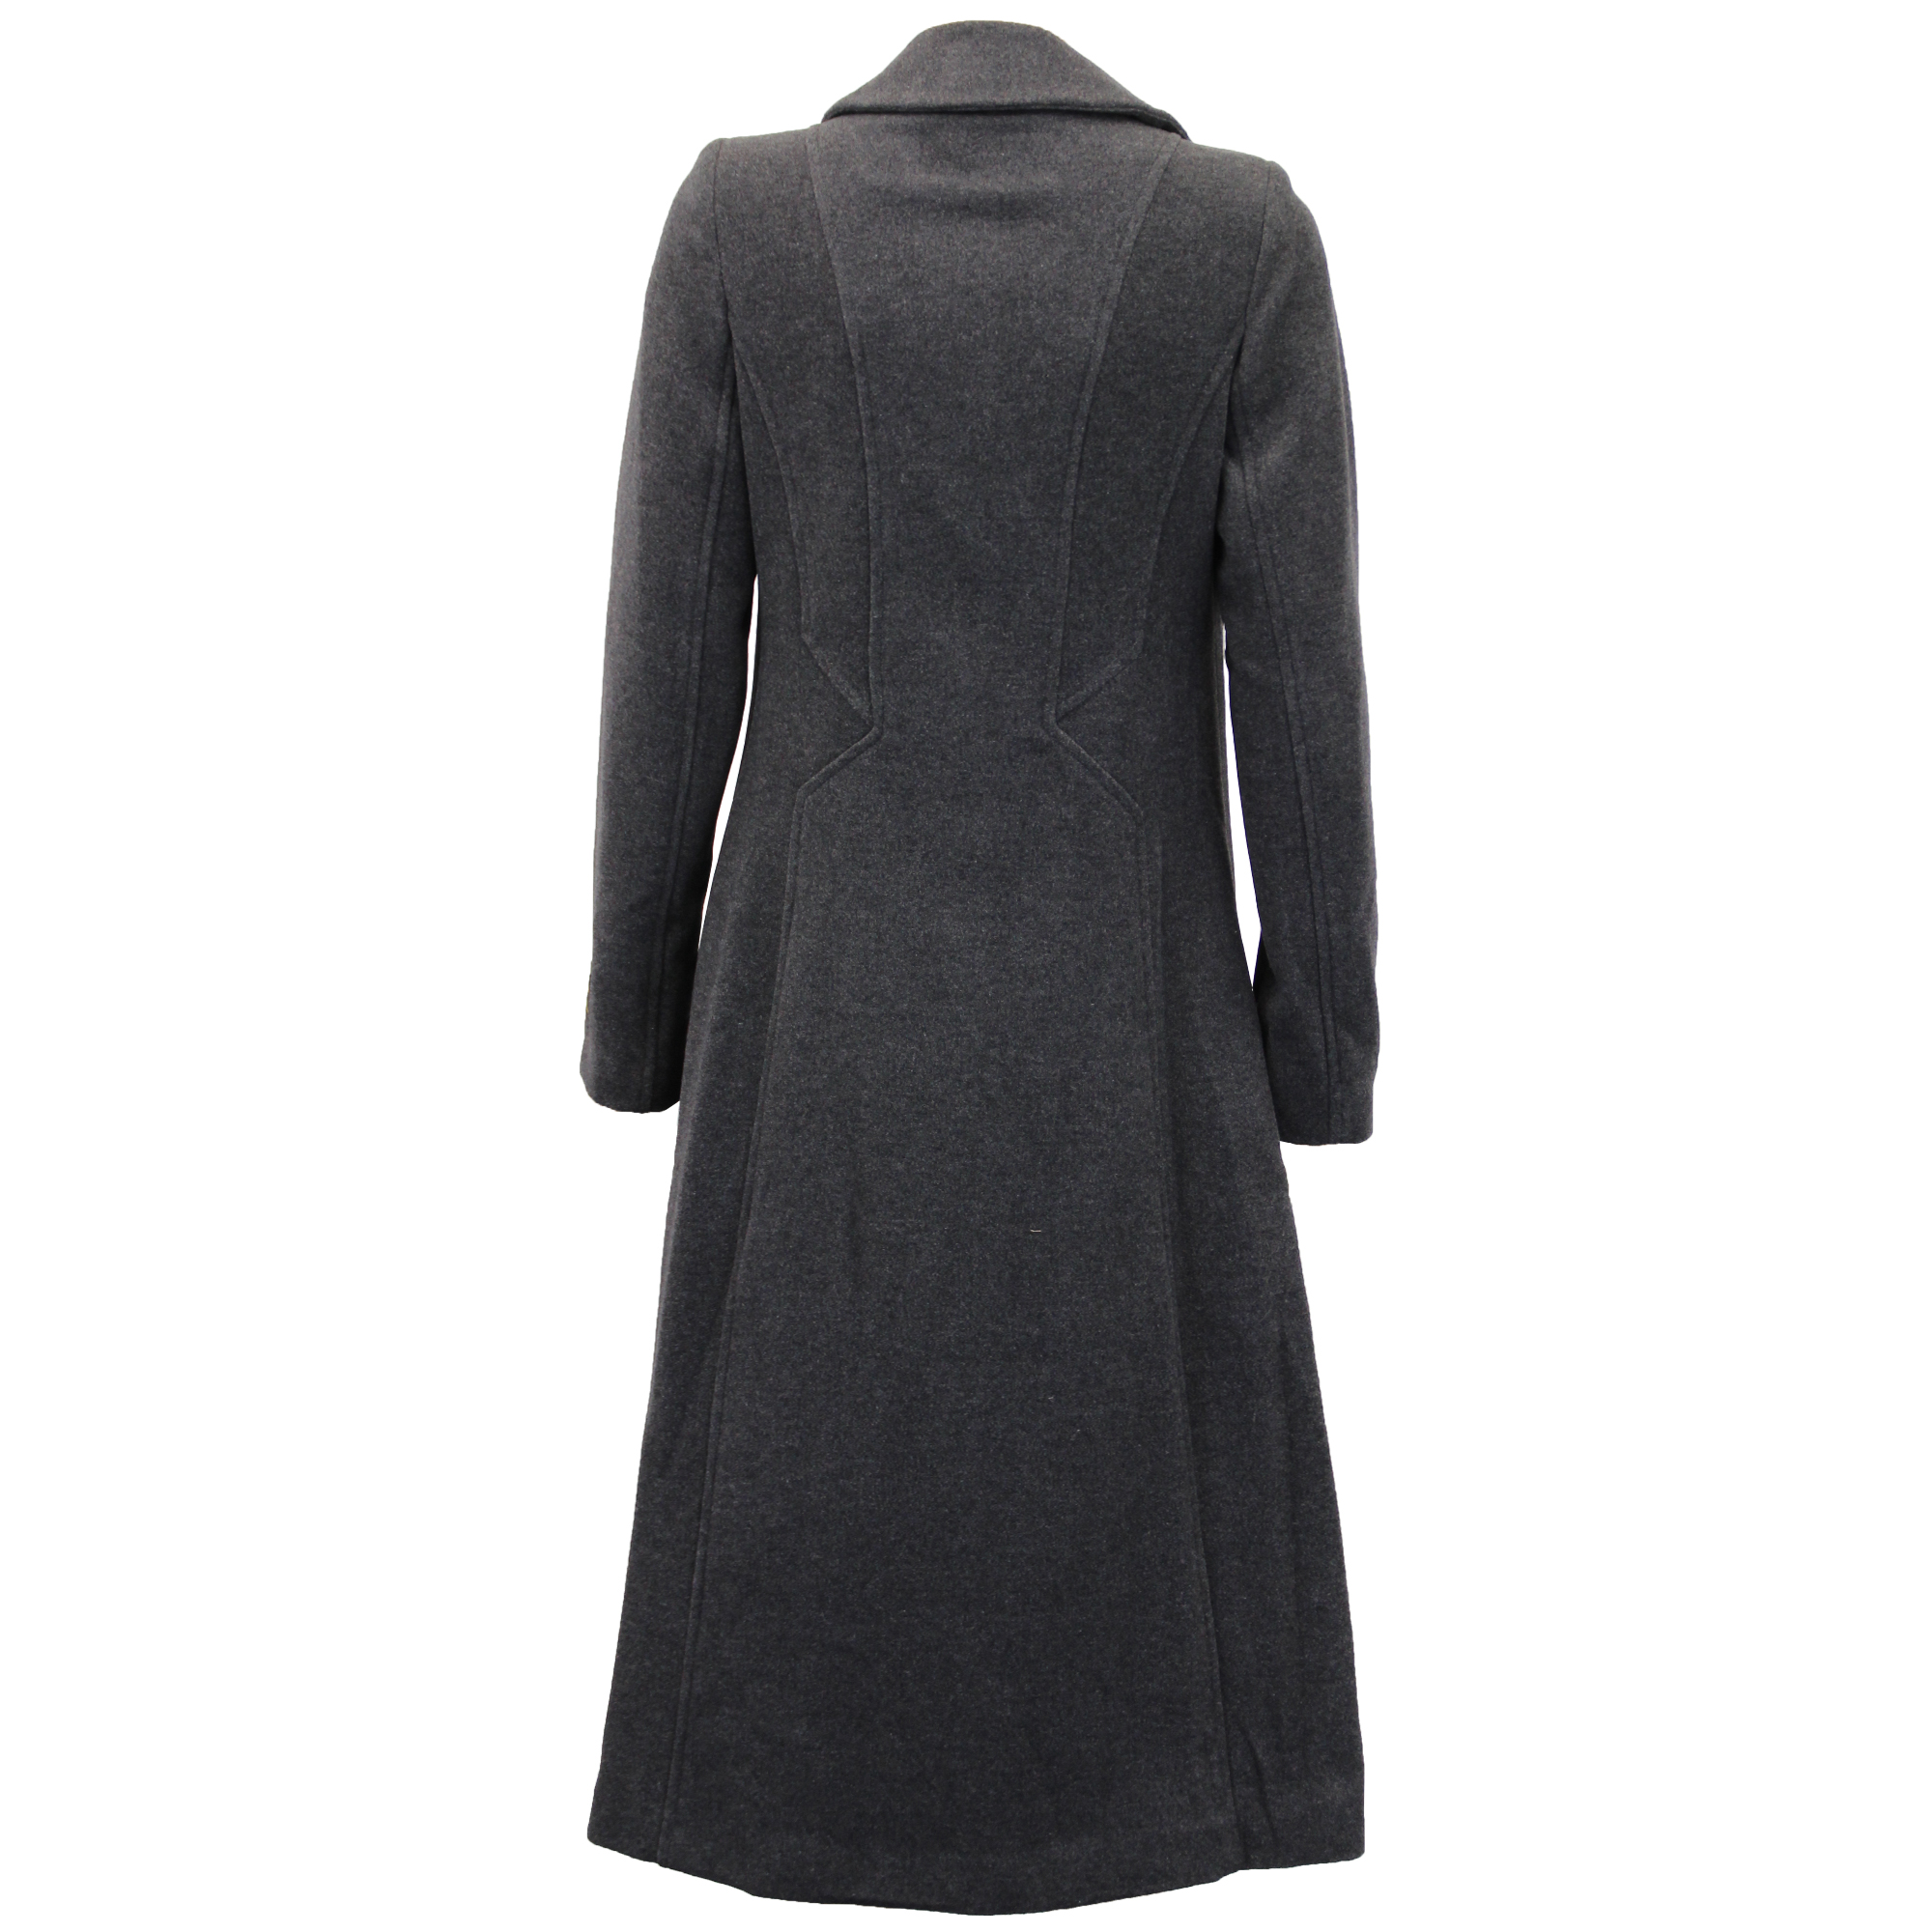 Ladies-Wool-Cashmere-Coat-Womens-Jacket-Long-Fashion-Warm-Casual-Winter-New thumbnail 9